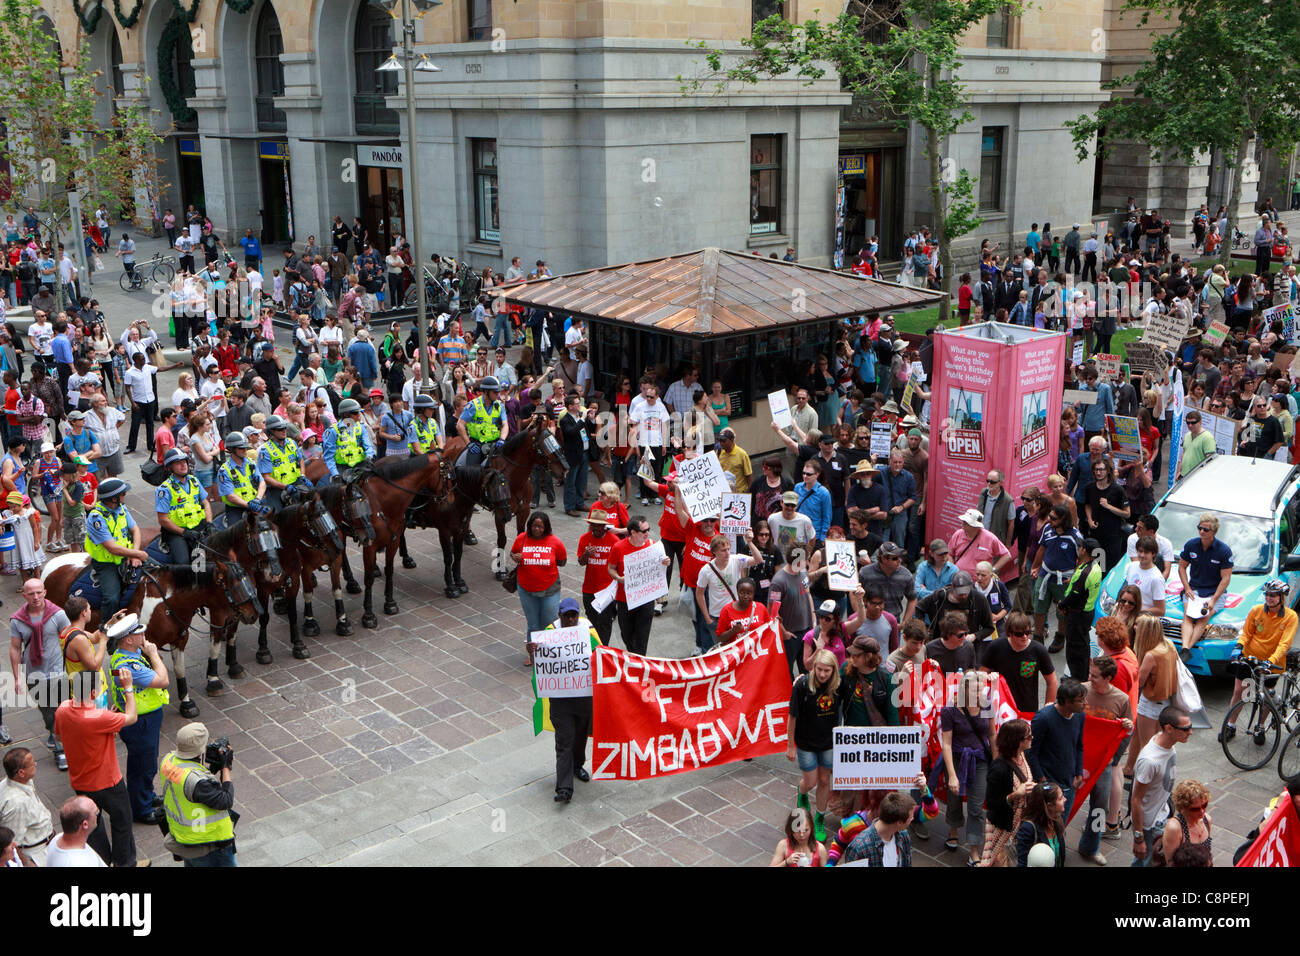 Protesters march past mounted police. The protest was held to coincide with the start of CHOGM 2011 held in Perth. - Stock Image